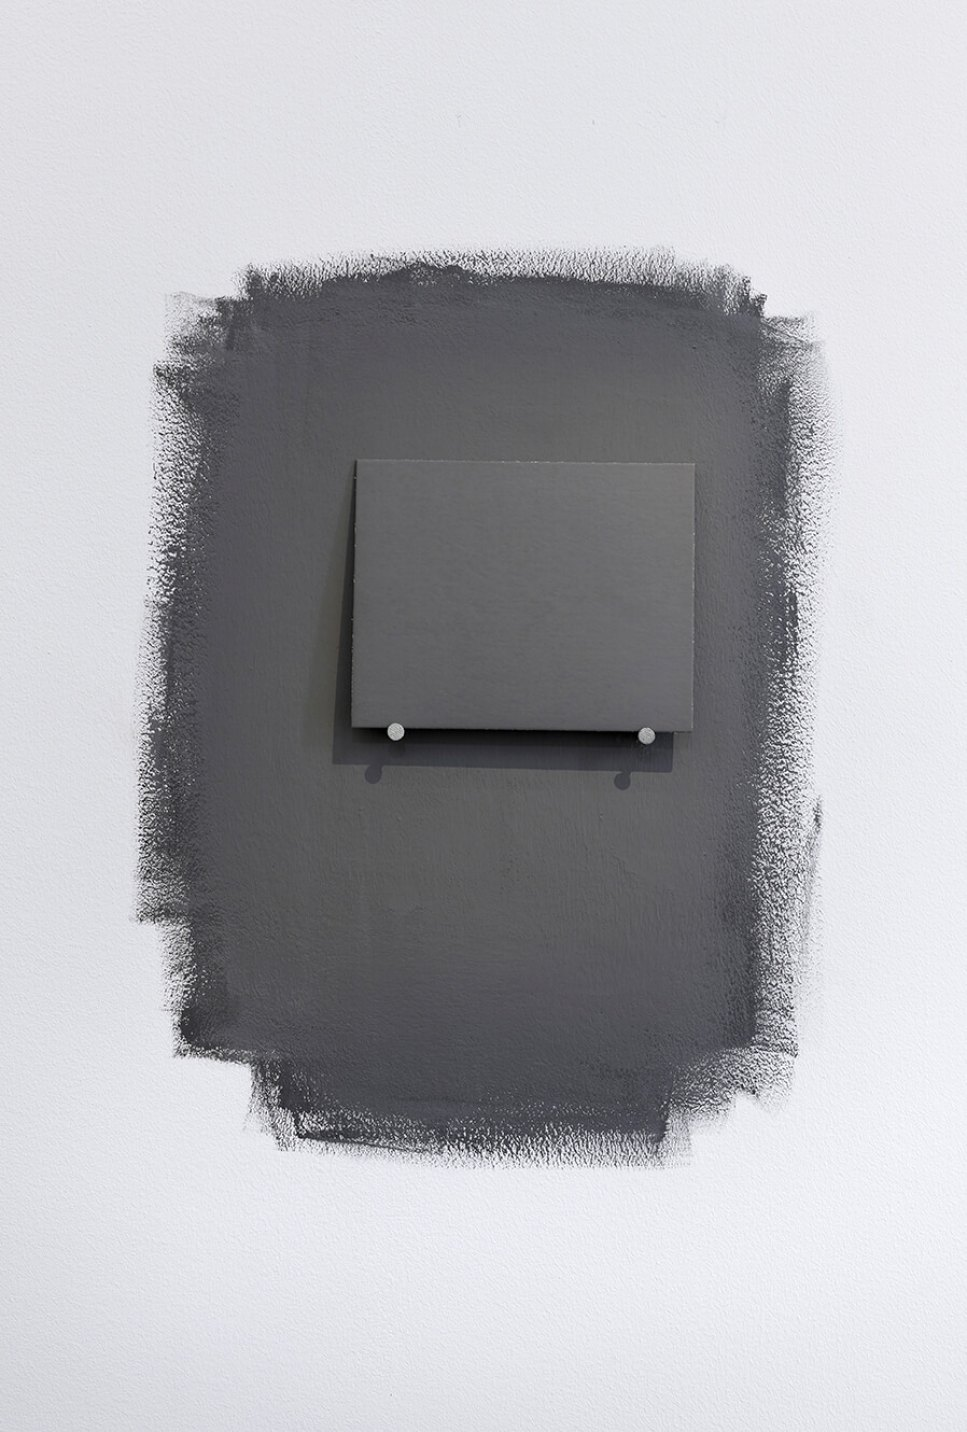 Joëlle Tuerlinckx, <em>Titre-salle 'gris neutral Kodak'</em>, 2005/2012, pigment dispersion, clous, carton 'gris neutral Kodak', éclairage variable (naturel ou artificiel), dimensions variable - Mendes Wood DM